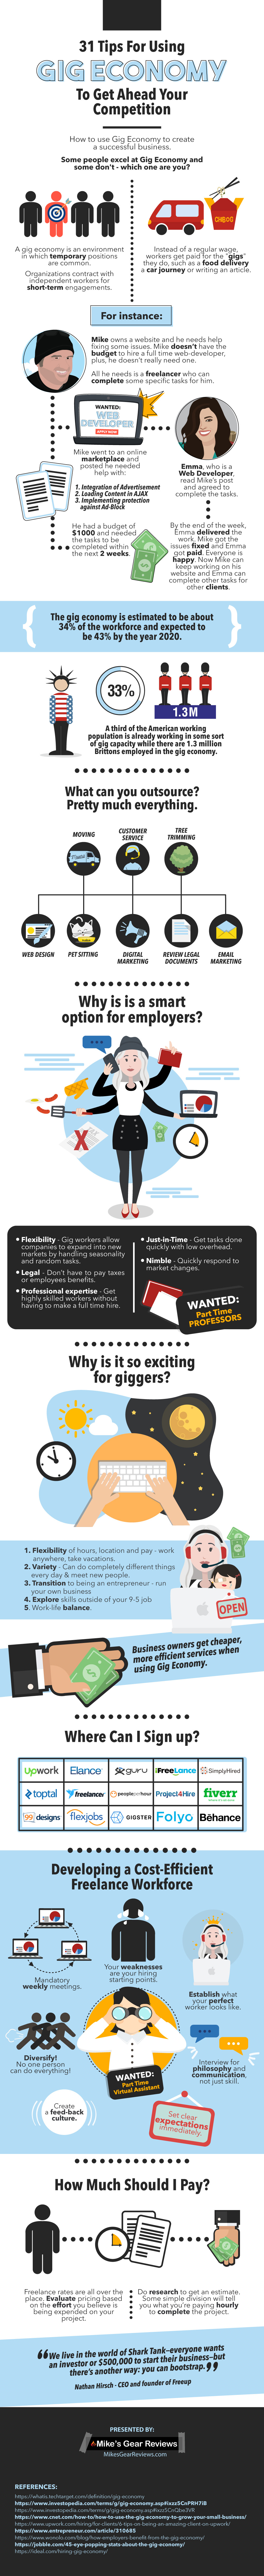 31 Tips For Using Gig Economy To Get Ahead Your Competition Infographic